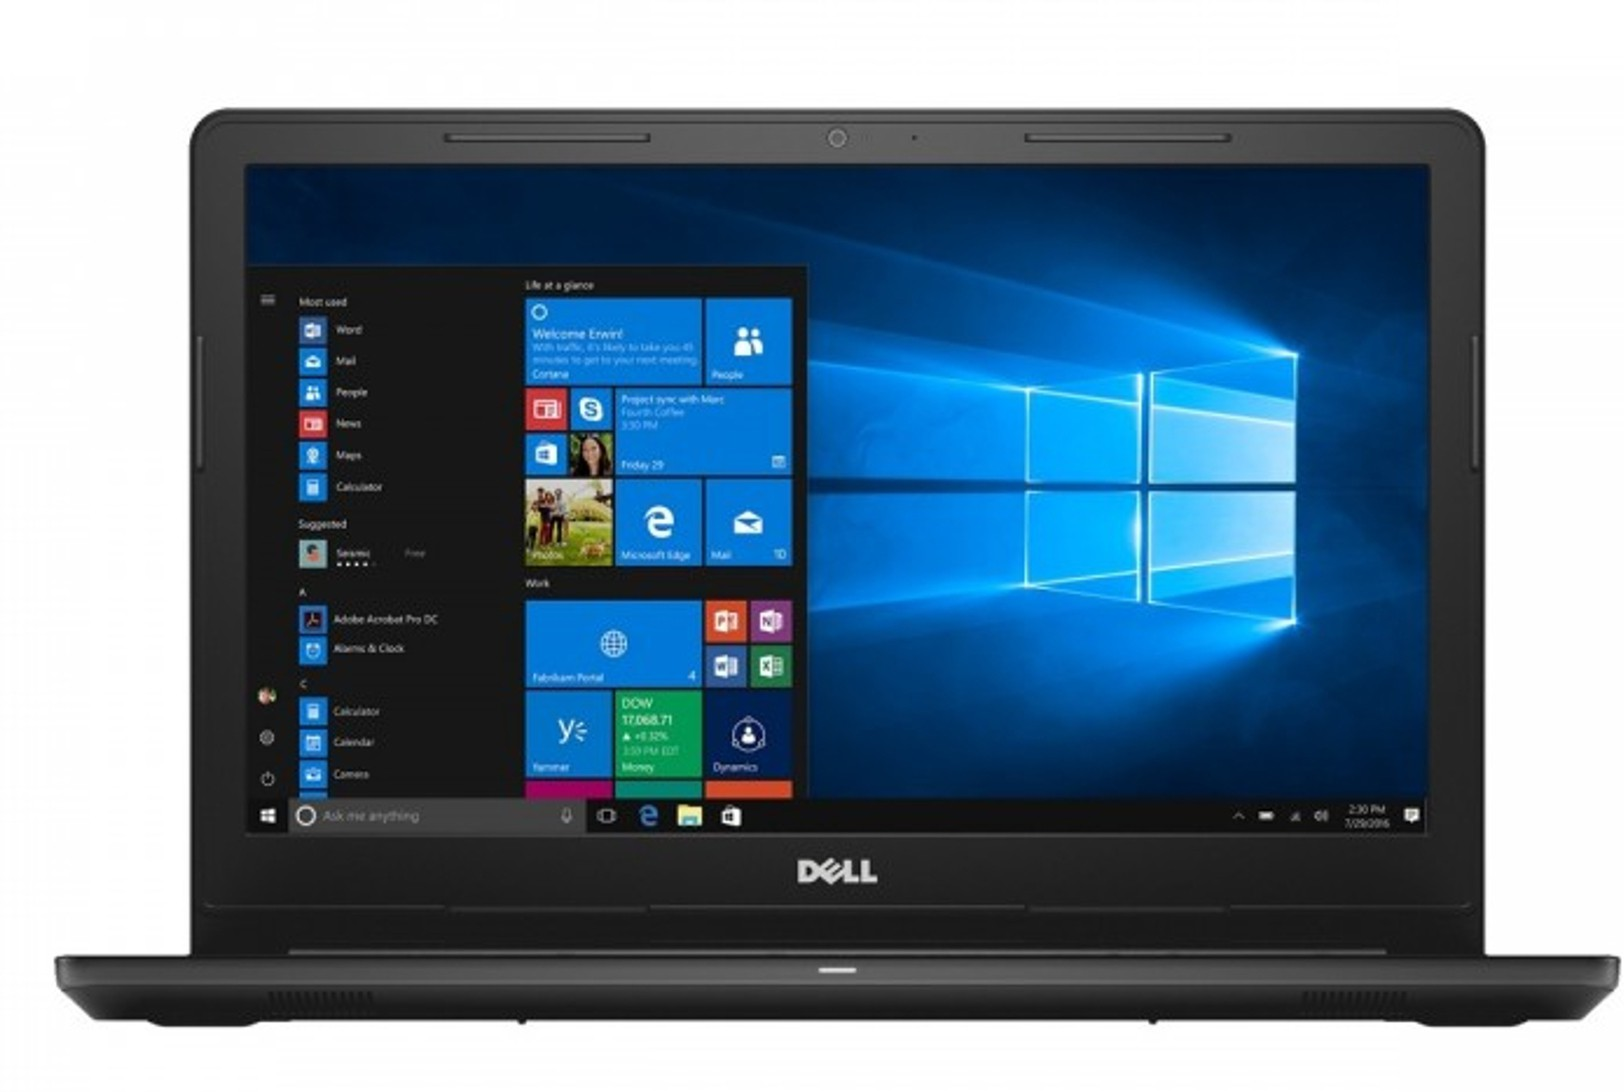 Dell Inspiron 15 3000 Series Core i5 8th Gen 3576 Laptop Image